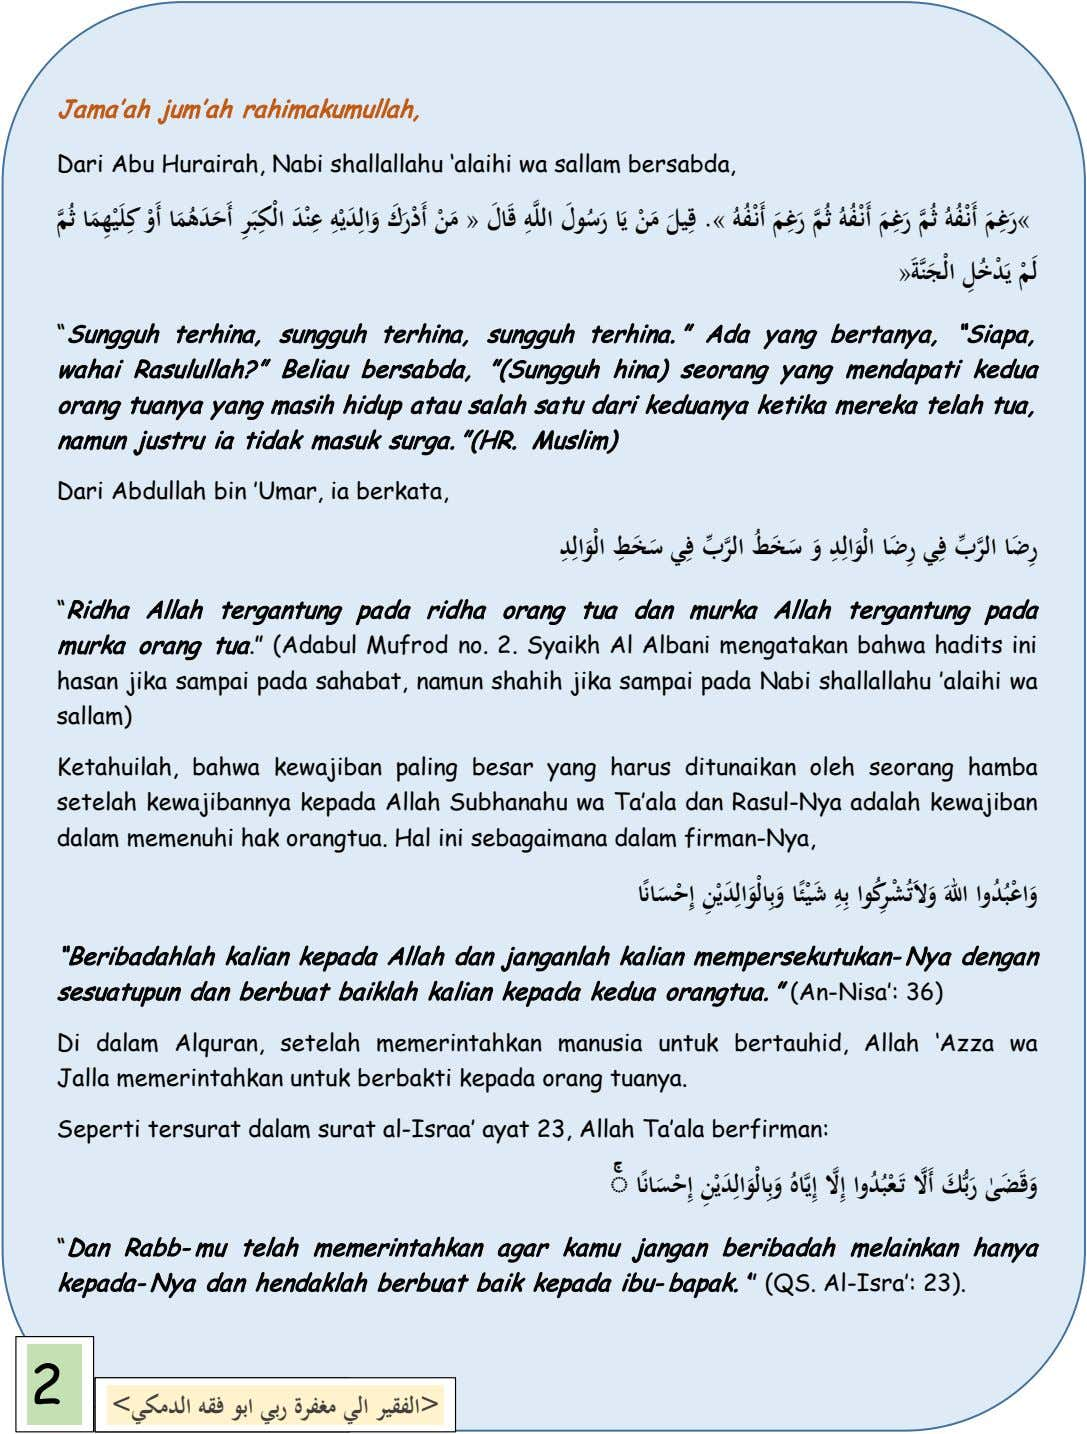 1 [Grab your reader's attention with a great quote from the document Jama'ah jum'ah rahimakumullah,